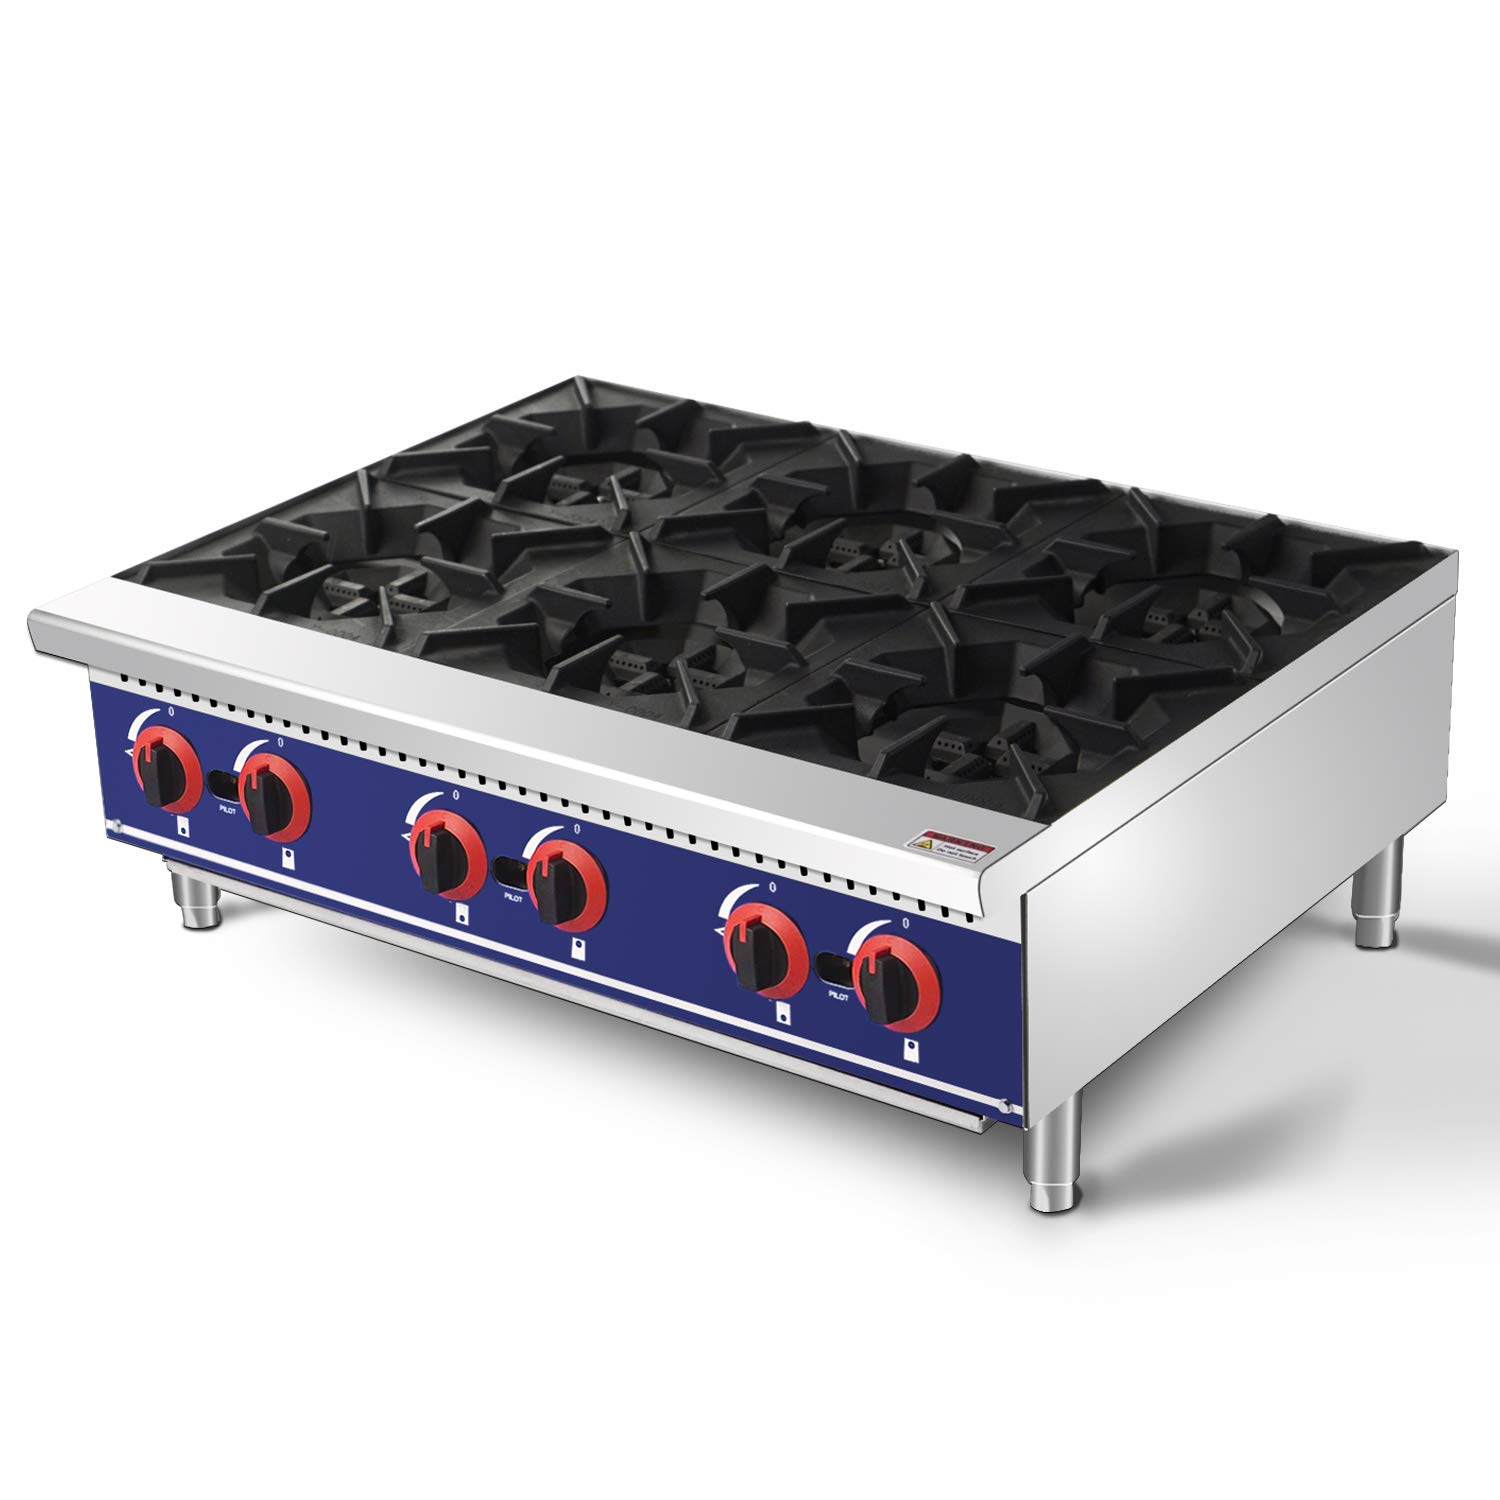 Commercial Countertop Hot Plate - KITMA 36 Inches 6 Burner Natural Gas Range - Restaurant Equipment for Soups, Sauces by KITMA